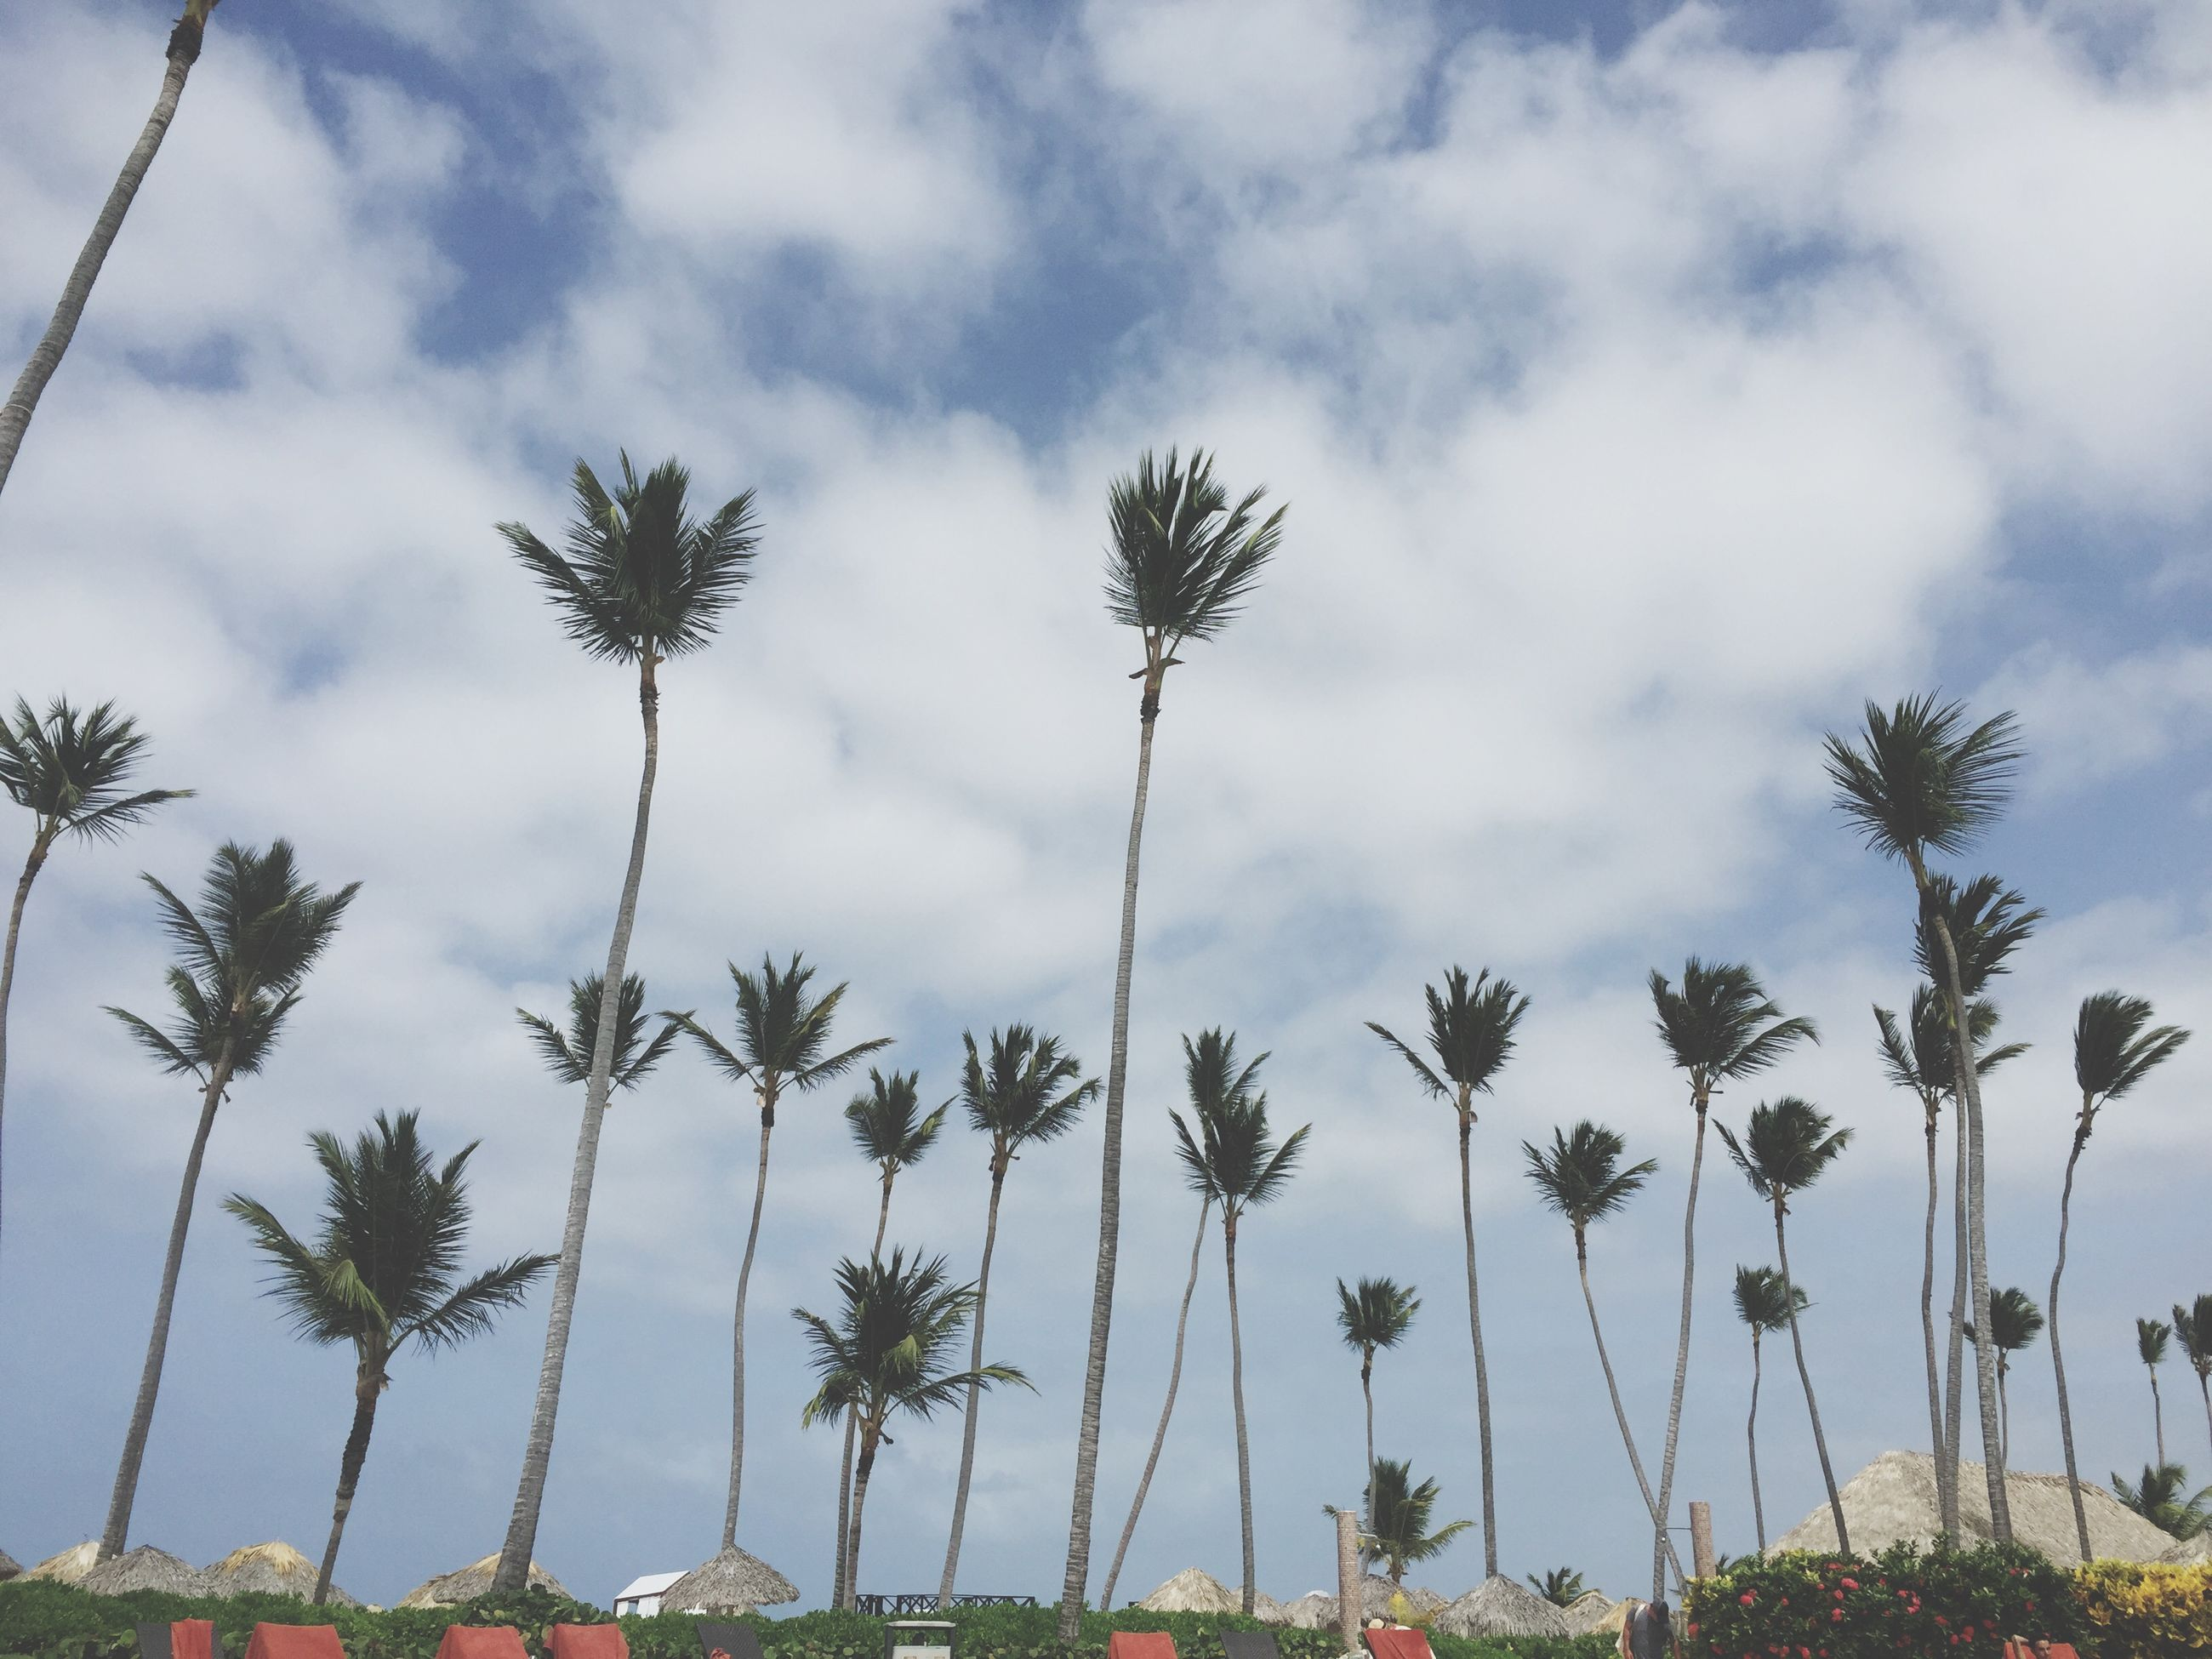 sky, palm tree, growth, low angle view, tree, cloud - sky, tranquility, nature, beauty in nature, cloud, plant, cloudy, tranquil scene, scenics, tree trunk, growing, day, outdoors, no people, flower